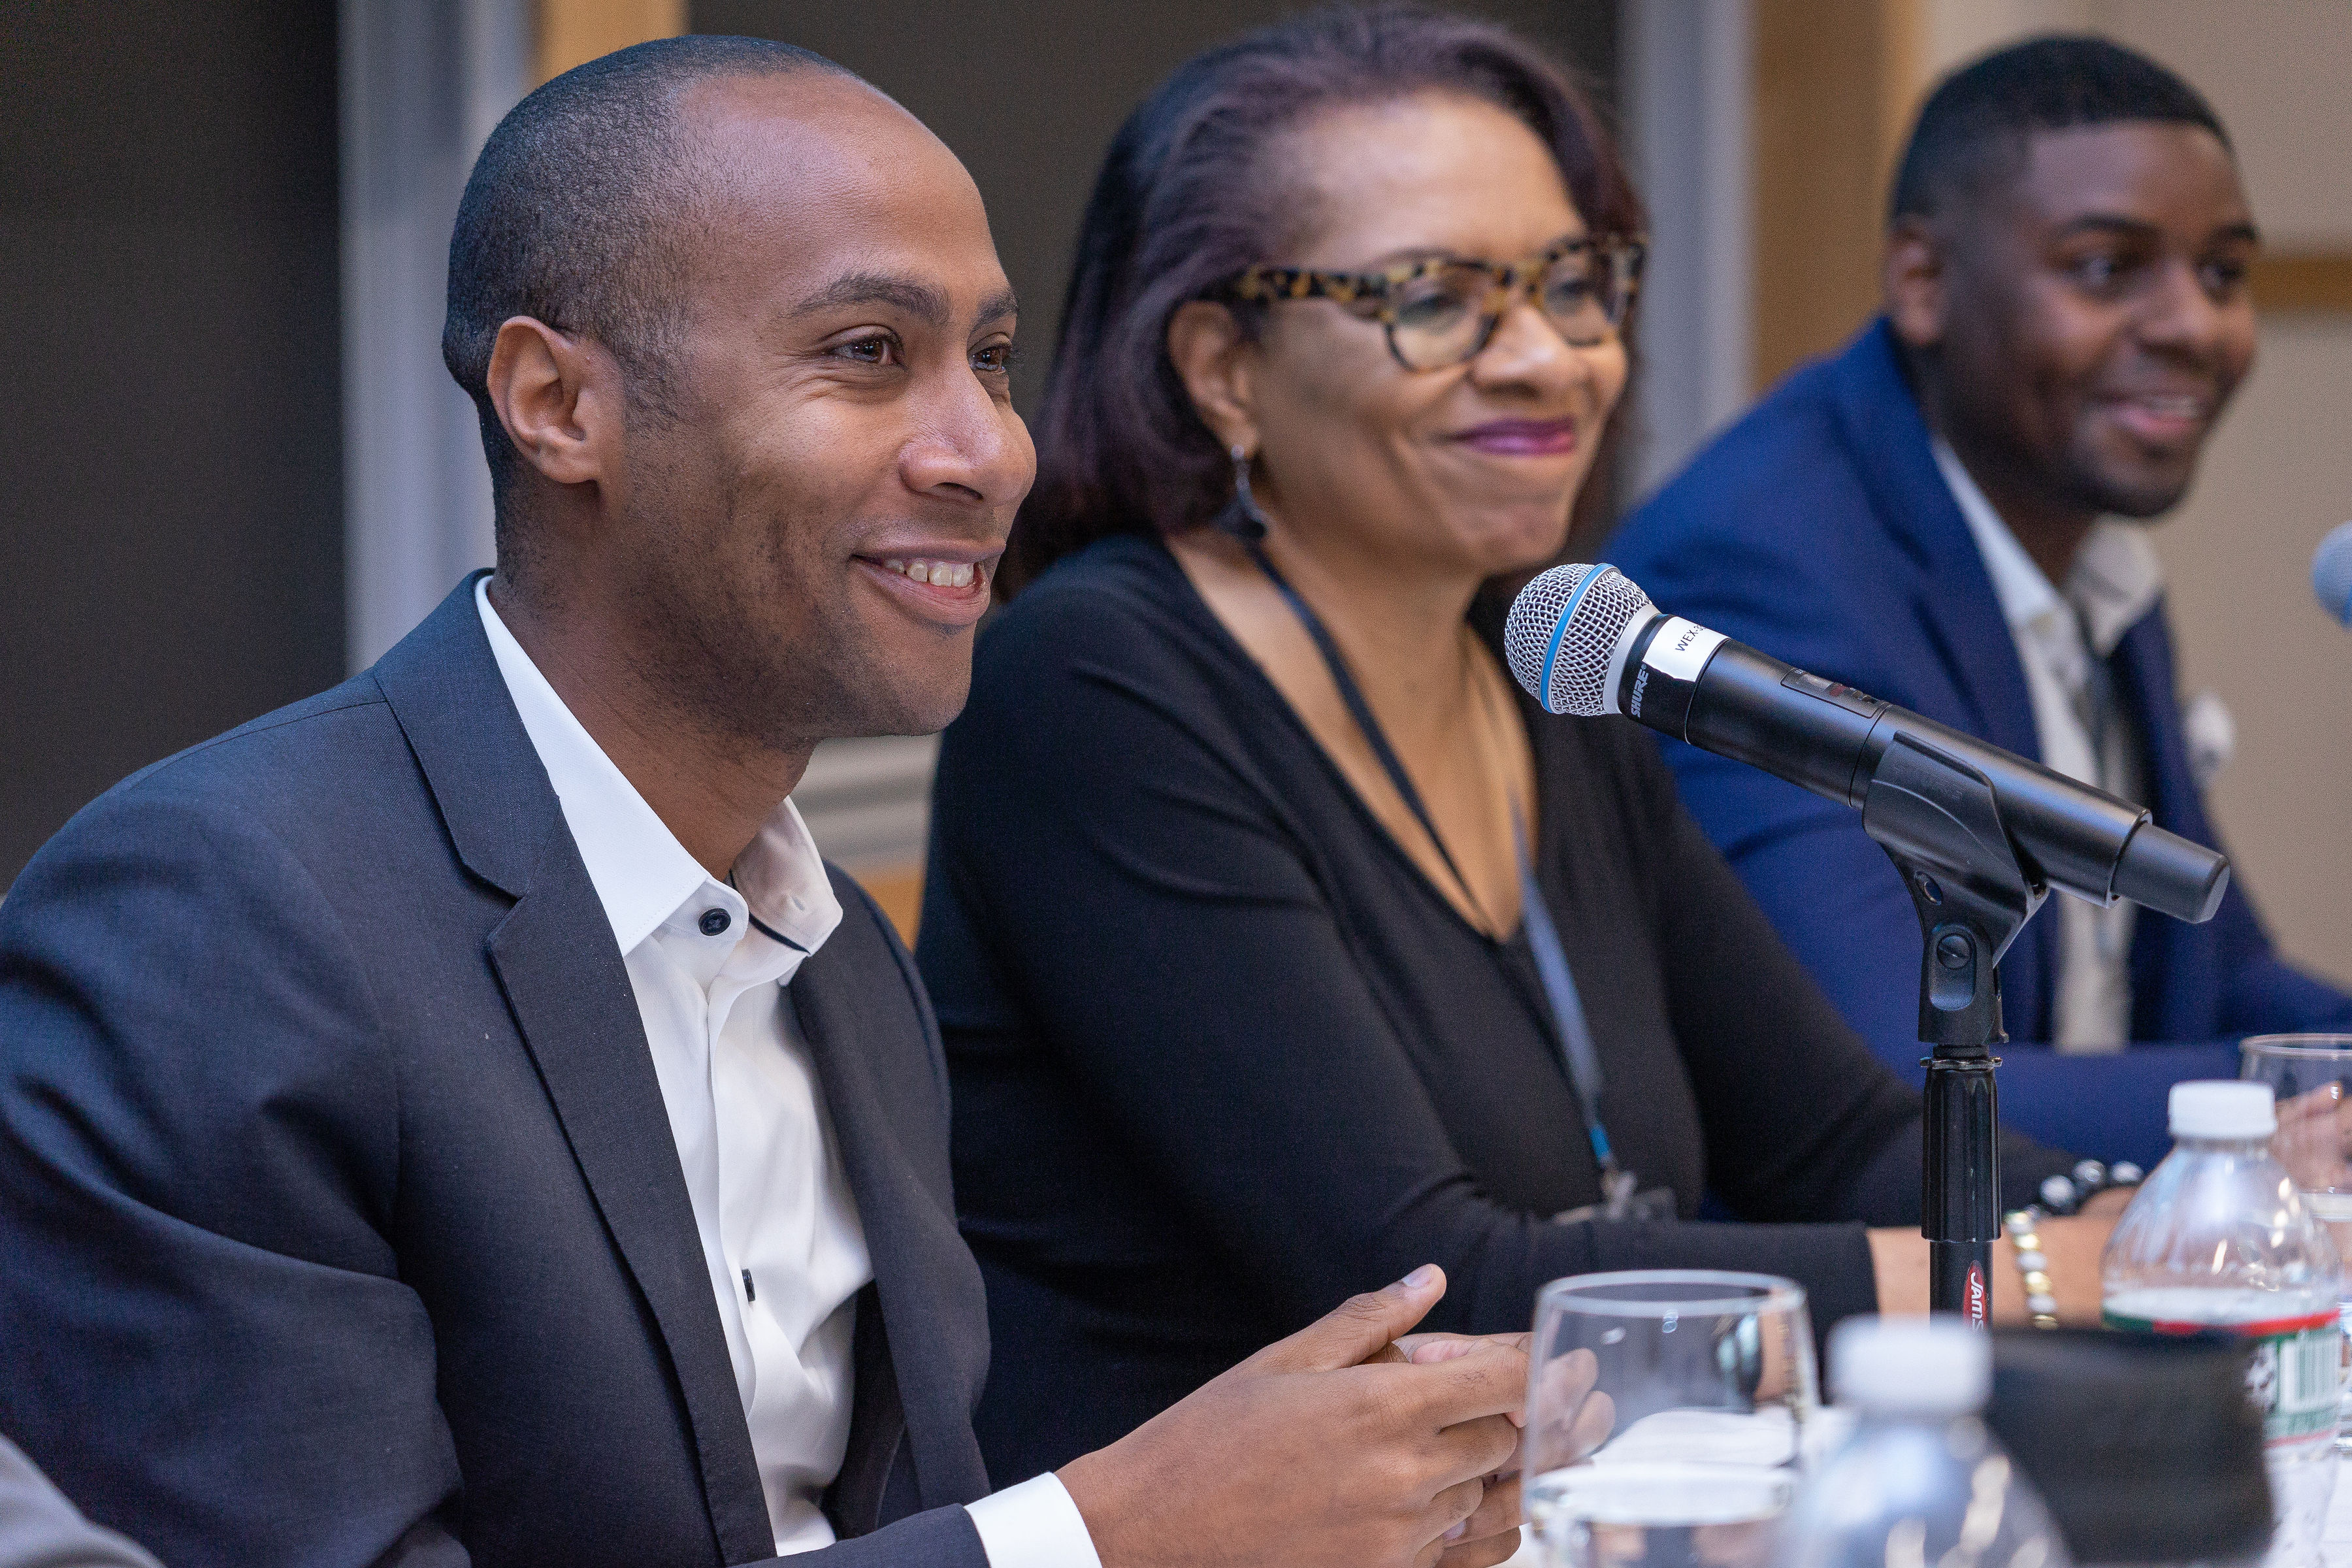 At the HKS Black Policy Summit